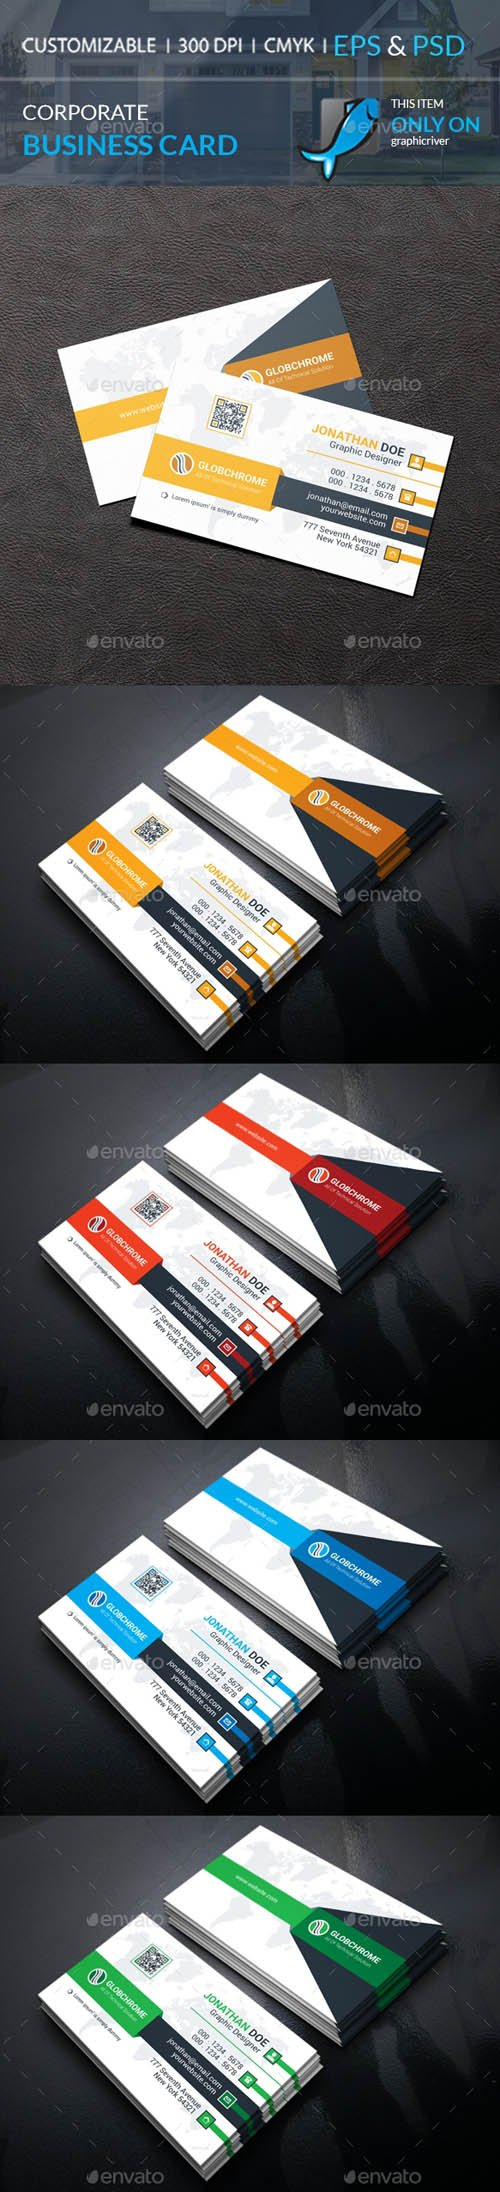 Graphicriver - Corporate Business Card 20191258